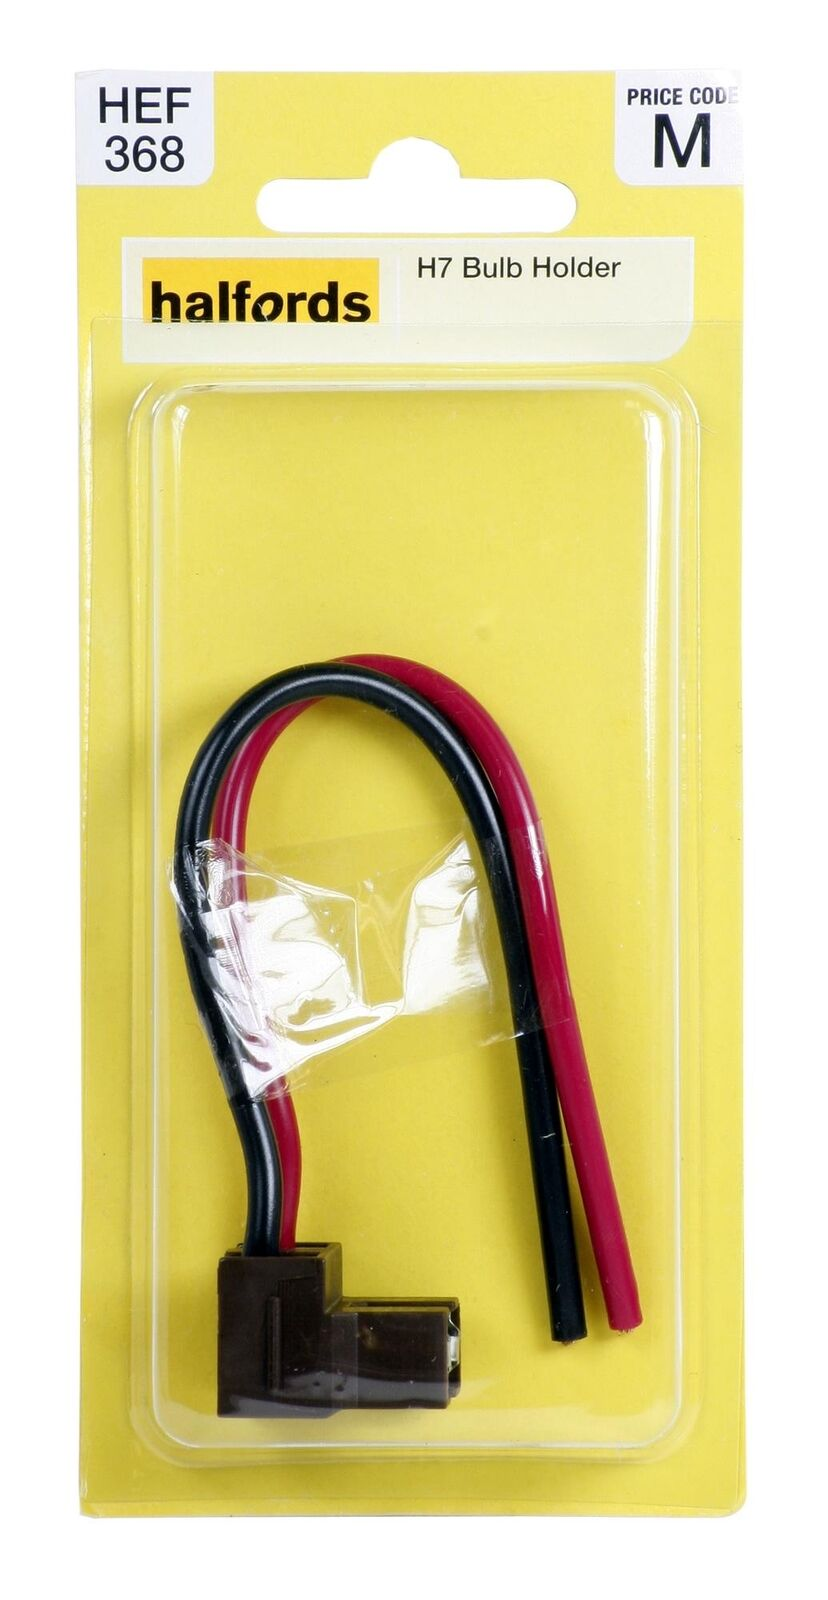 Halfords Hef368 H7 Bulb Holder Socket Connecting Wire Headlight Amplifier Wiring Kit 1 Of See More